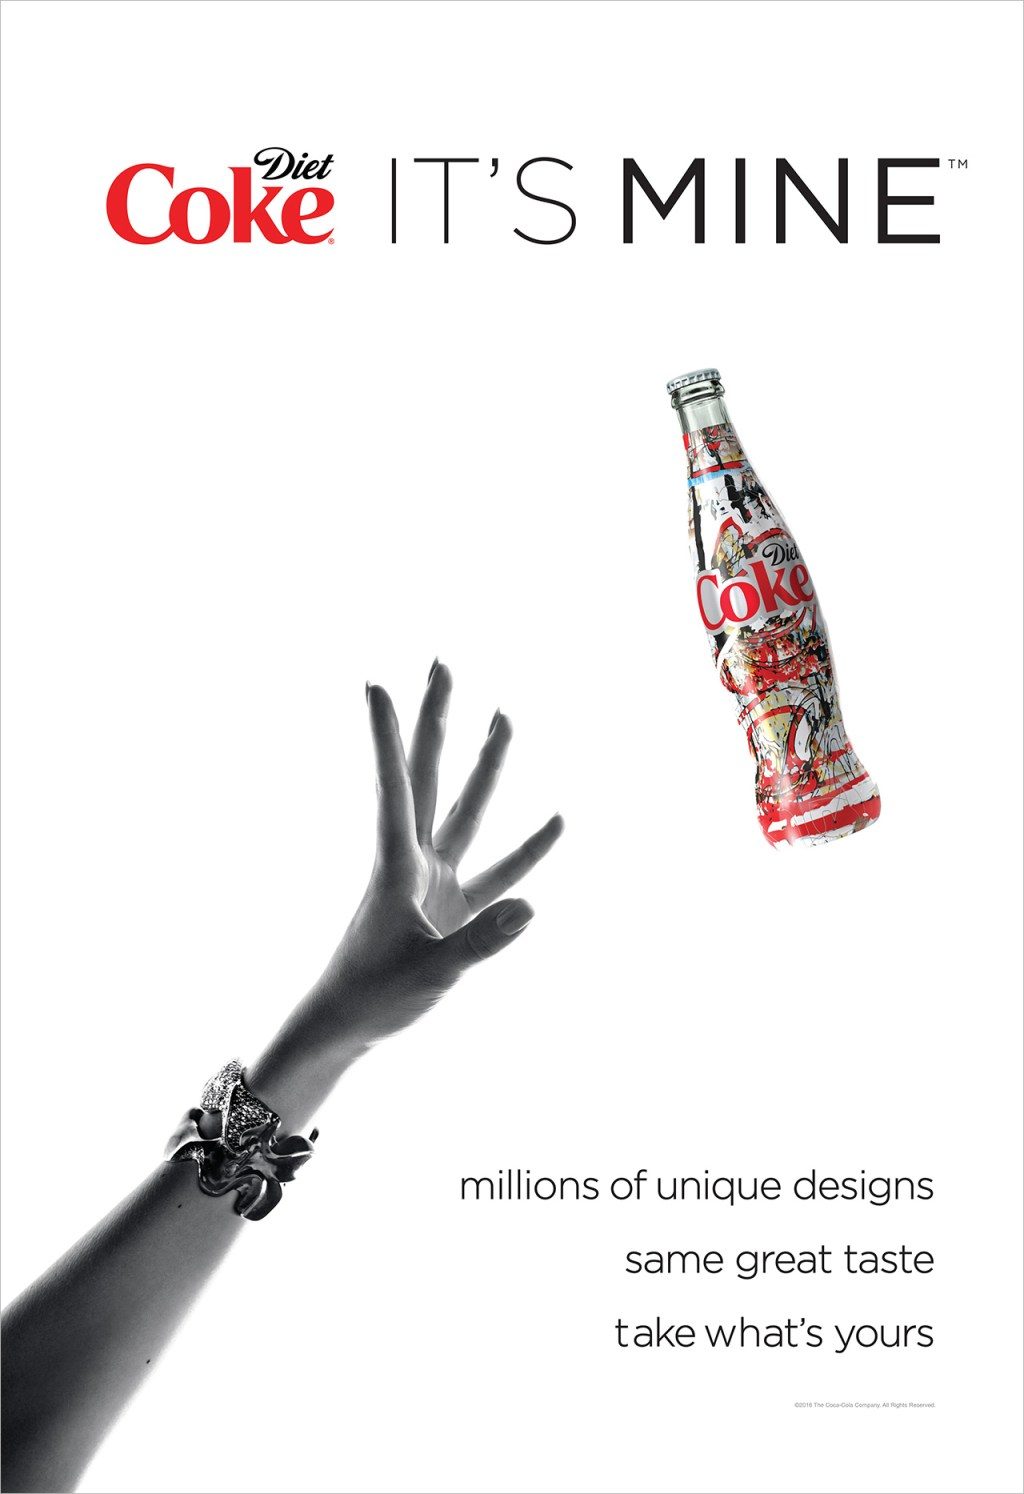 diet-coke-unique-labels-its-mine-3